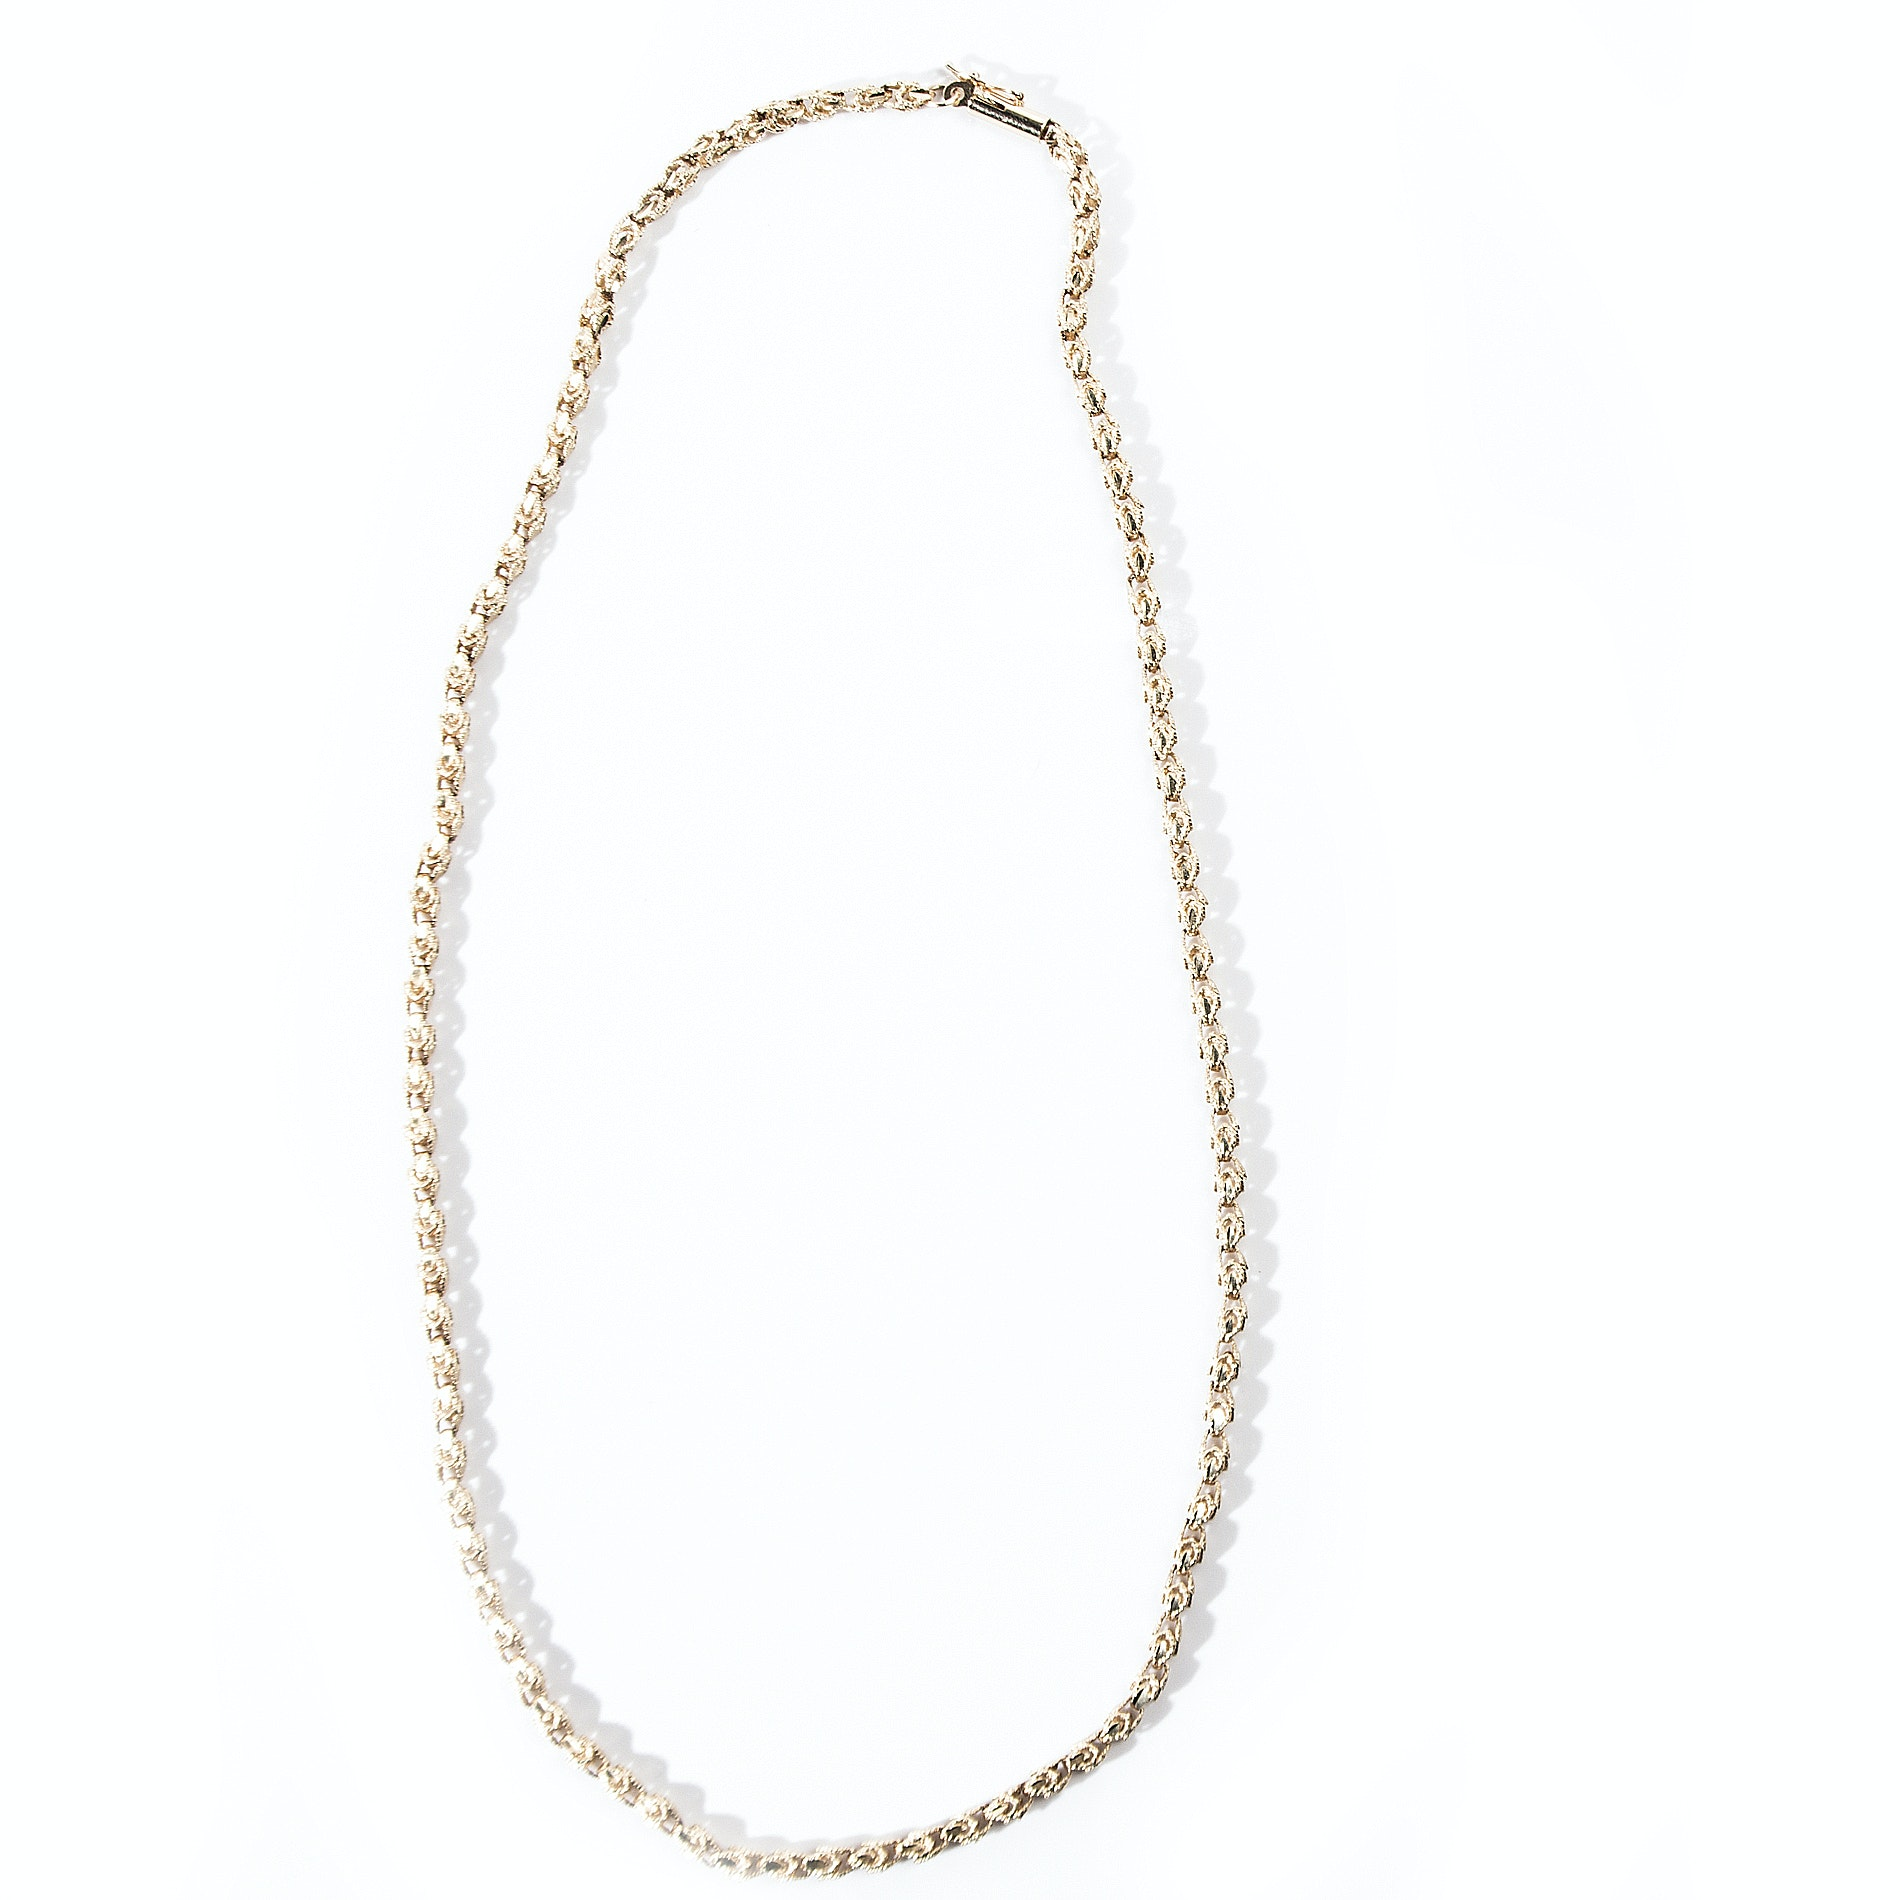 14K Yellow Gold Open Link Rope Chain Necklace